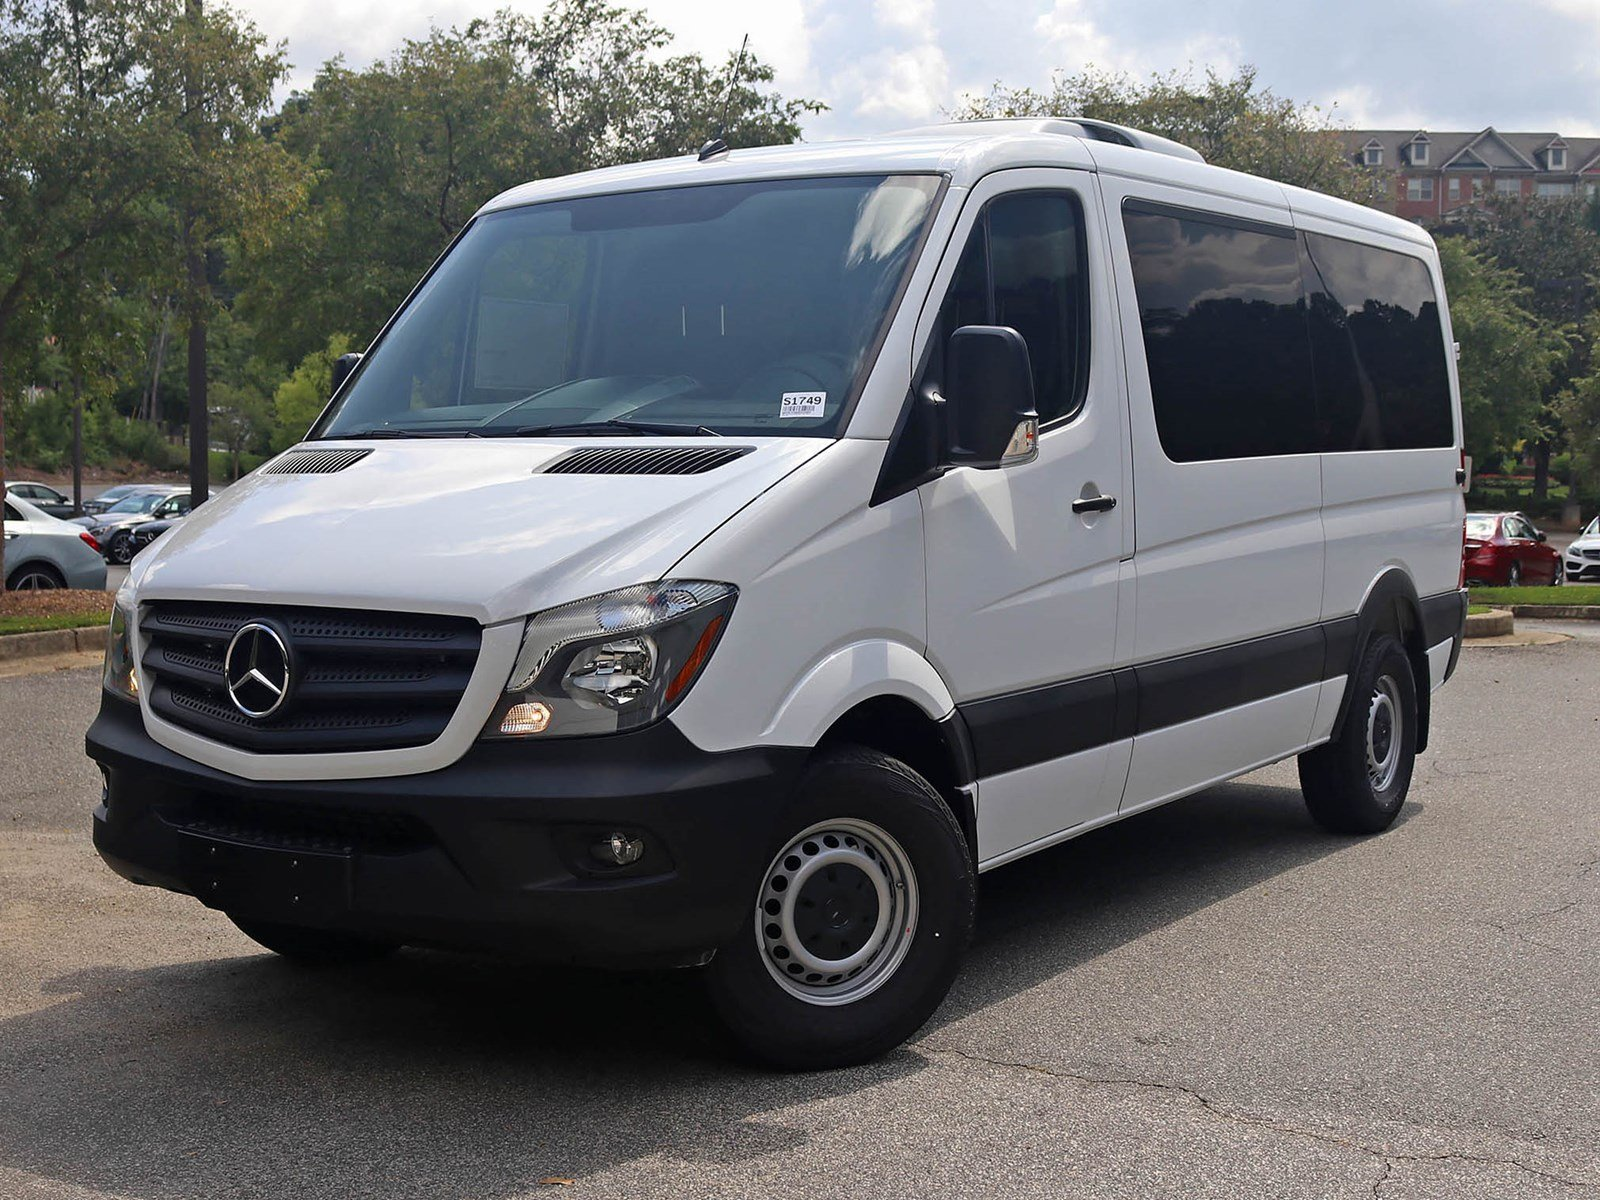 new 2017 mercedes benz sprinter 2500 passenger van passenger van in atlanta s1749 rbm of atlanta. Black Bedroom Furniture Sets. Home Design Ideas